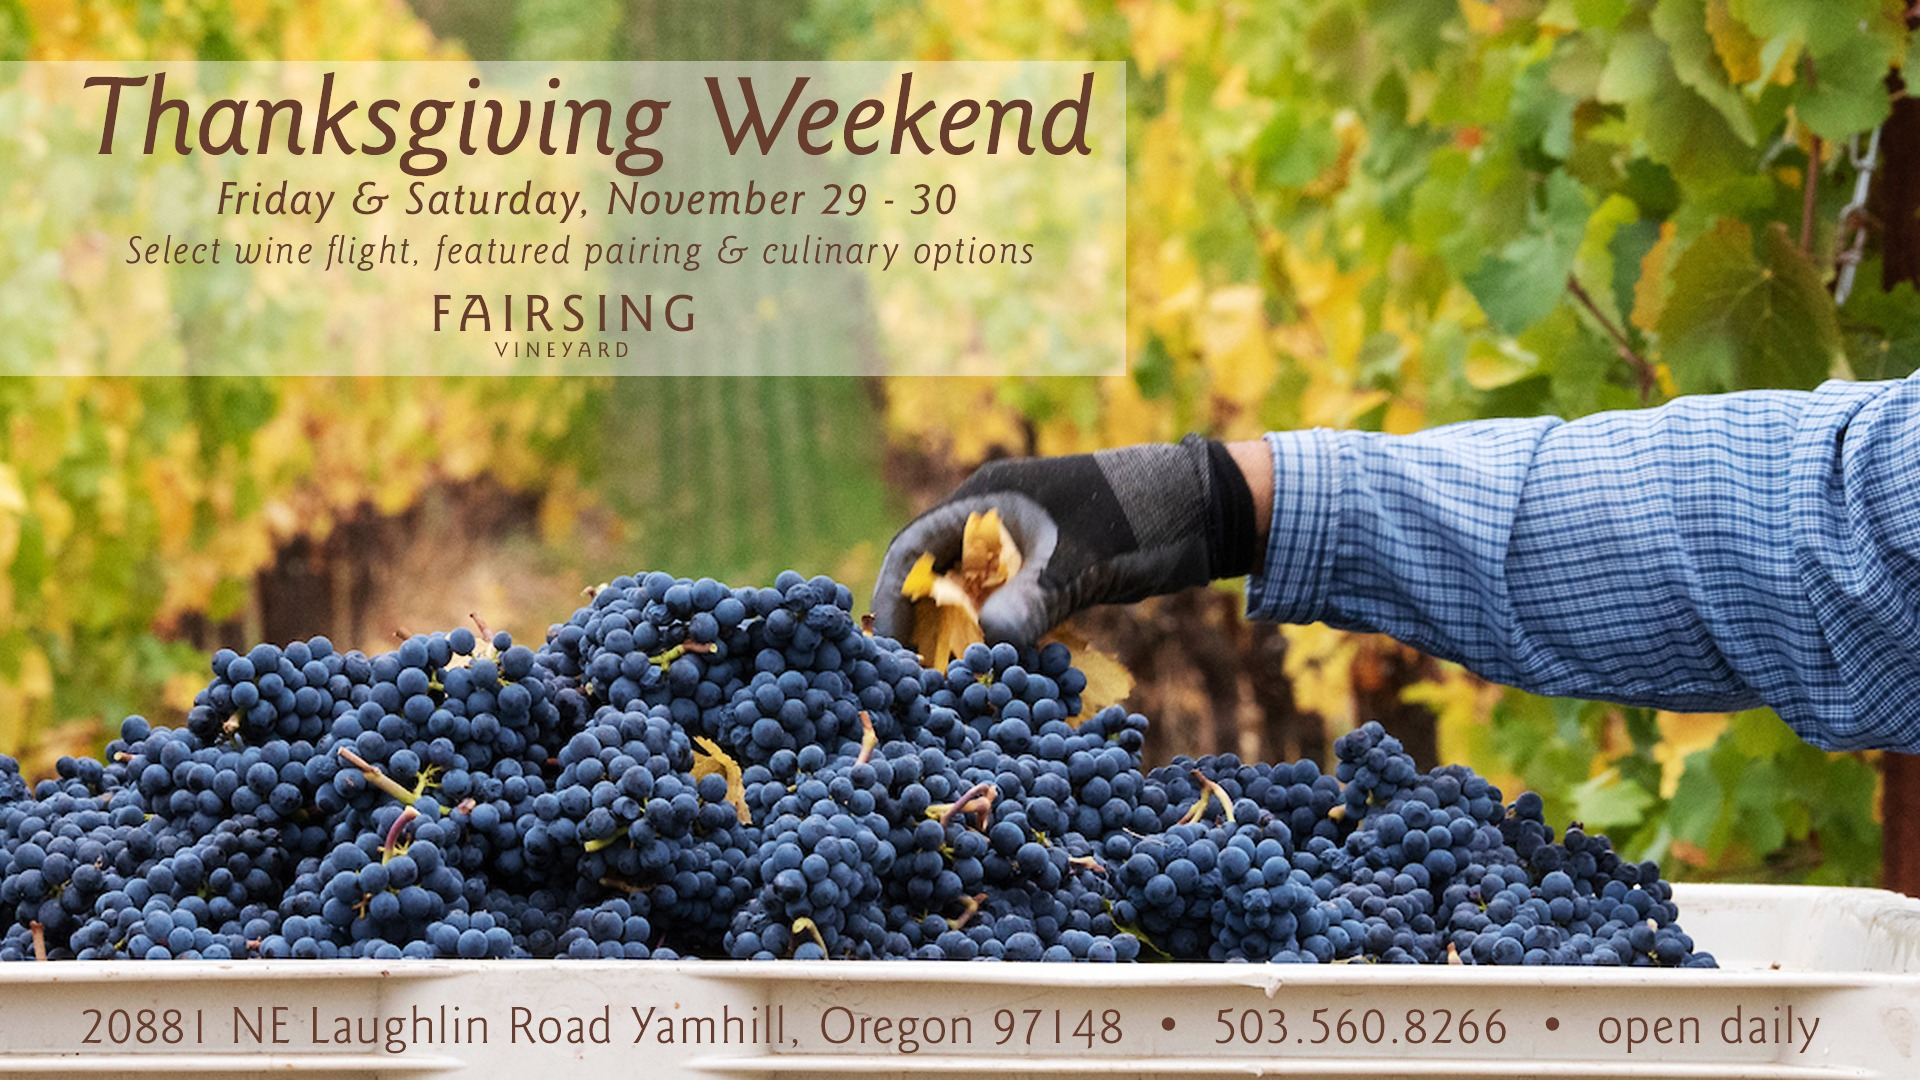 Thanksgiving Weekend @ Fairsing Vineyard